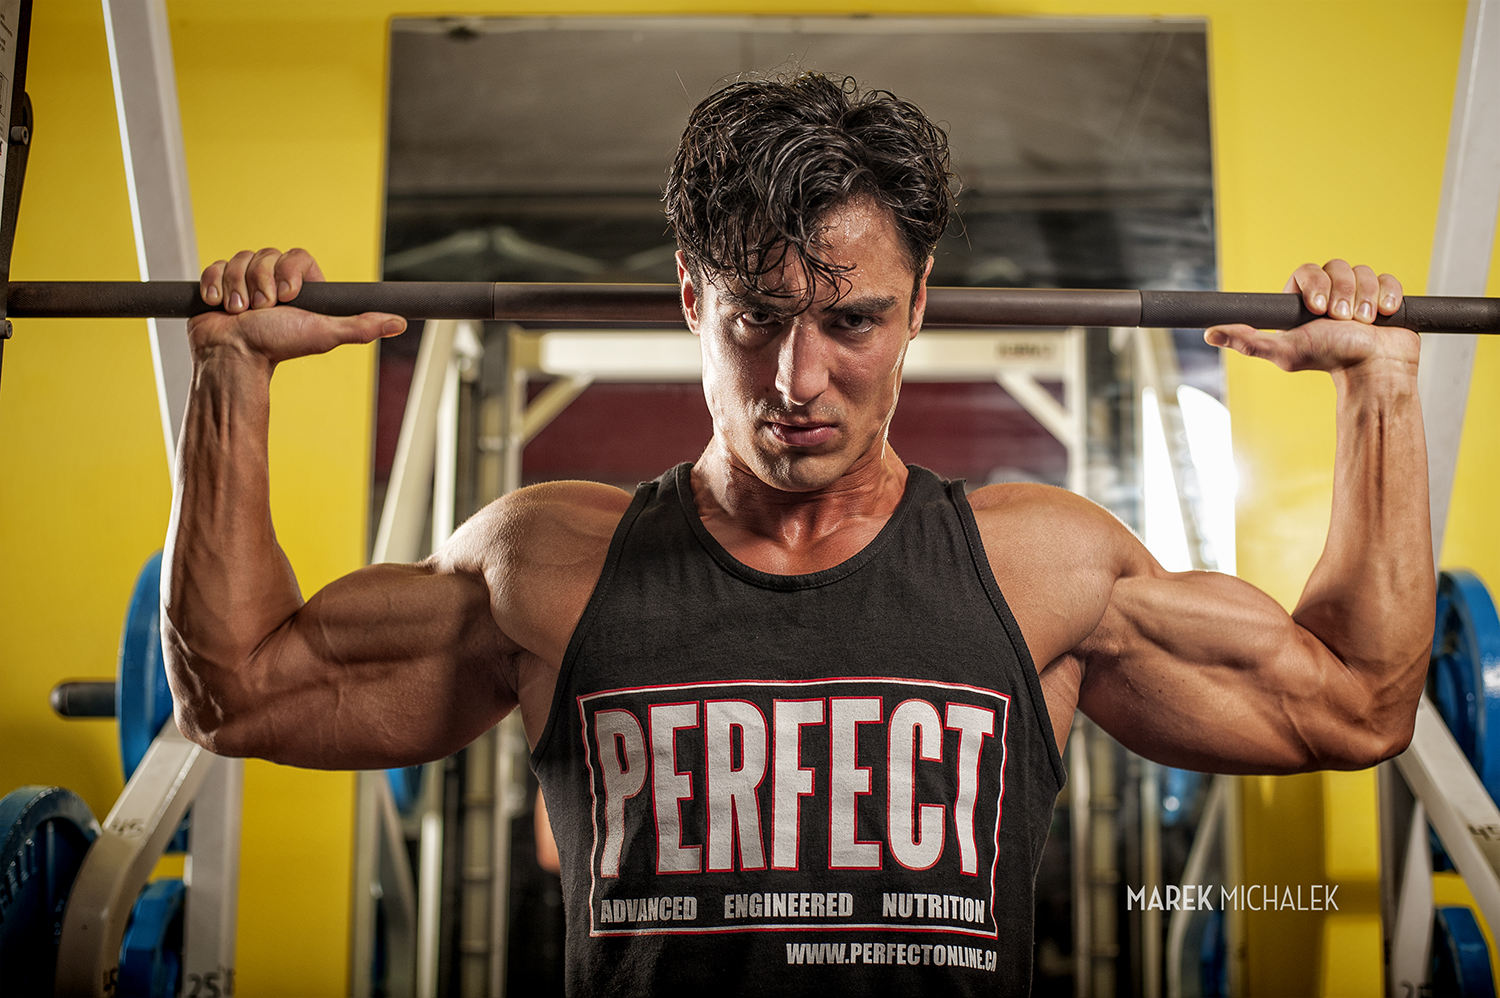 Hamilton Fitness Photographer - Marek Michalek 30.jpg